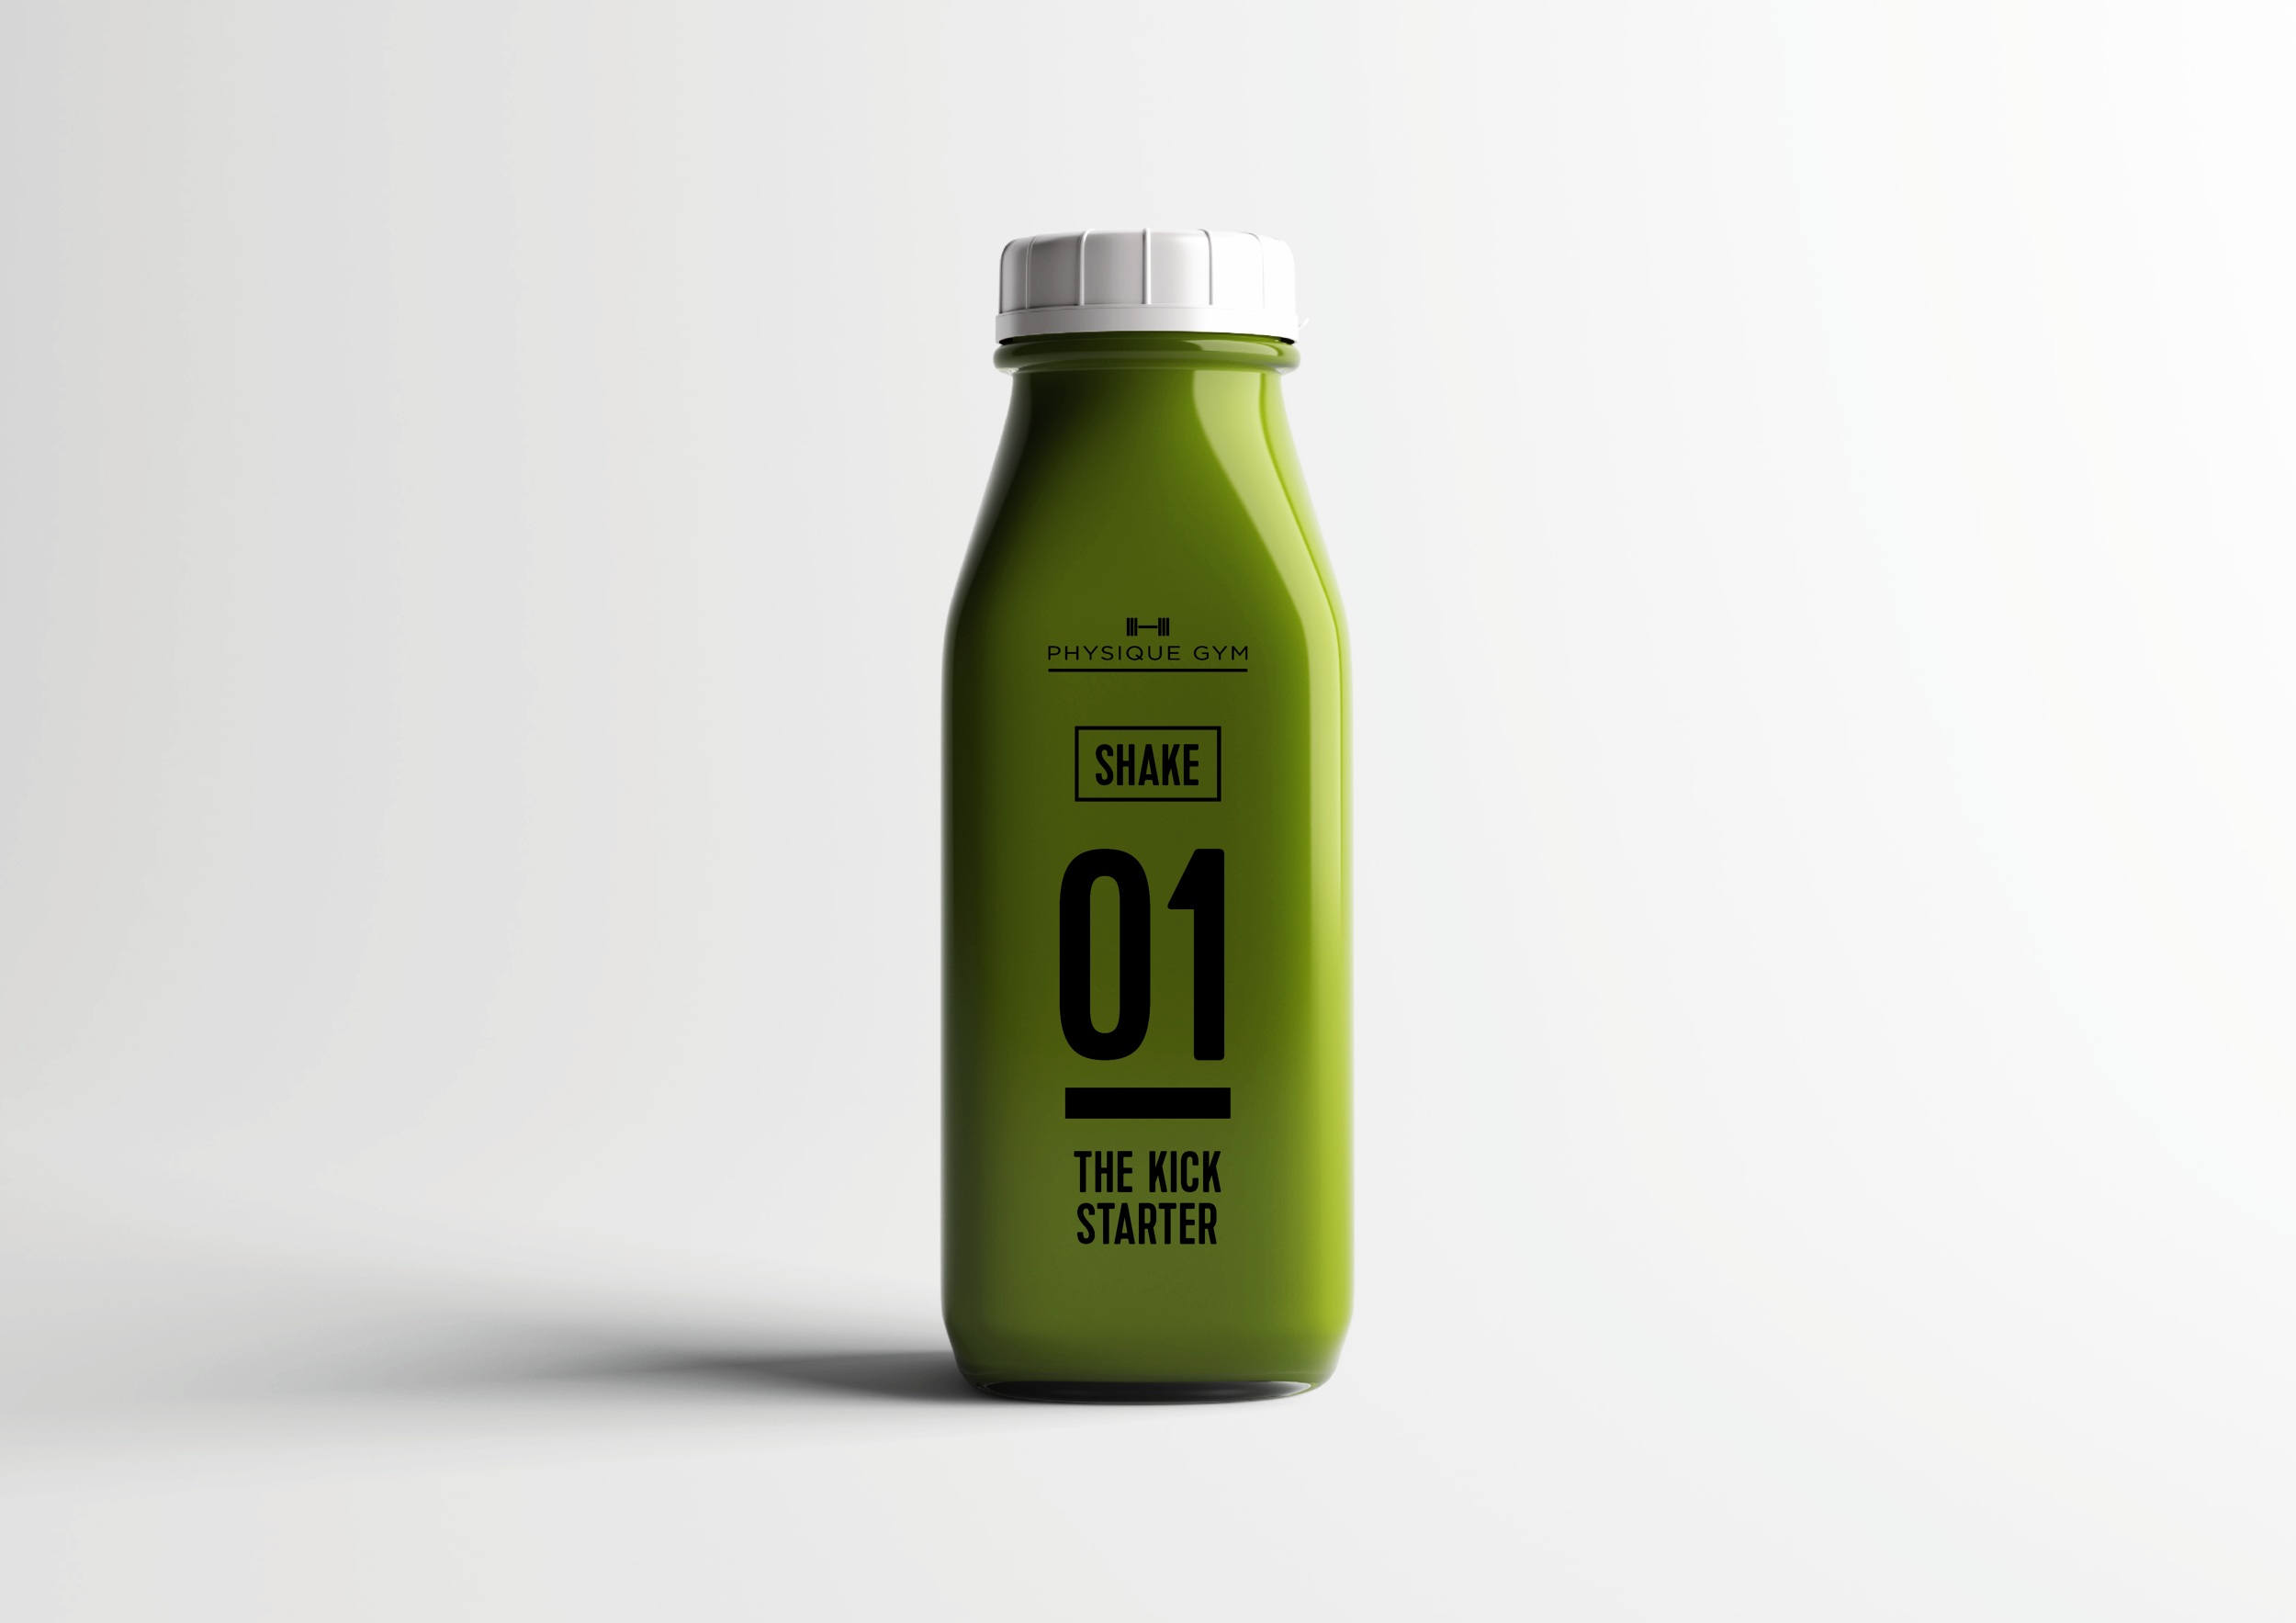 Protein shake bottle packaging design for London based gym Physique